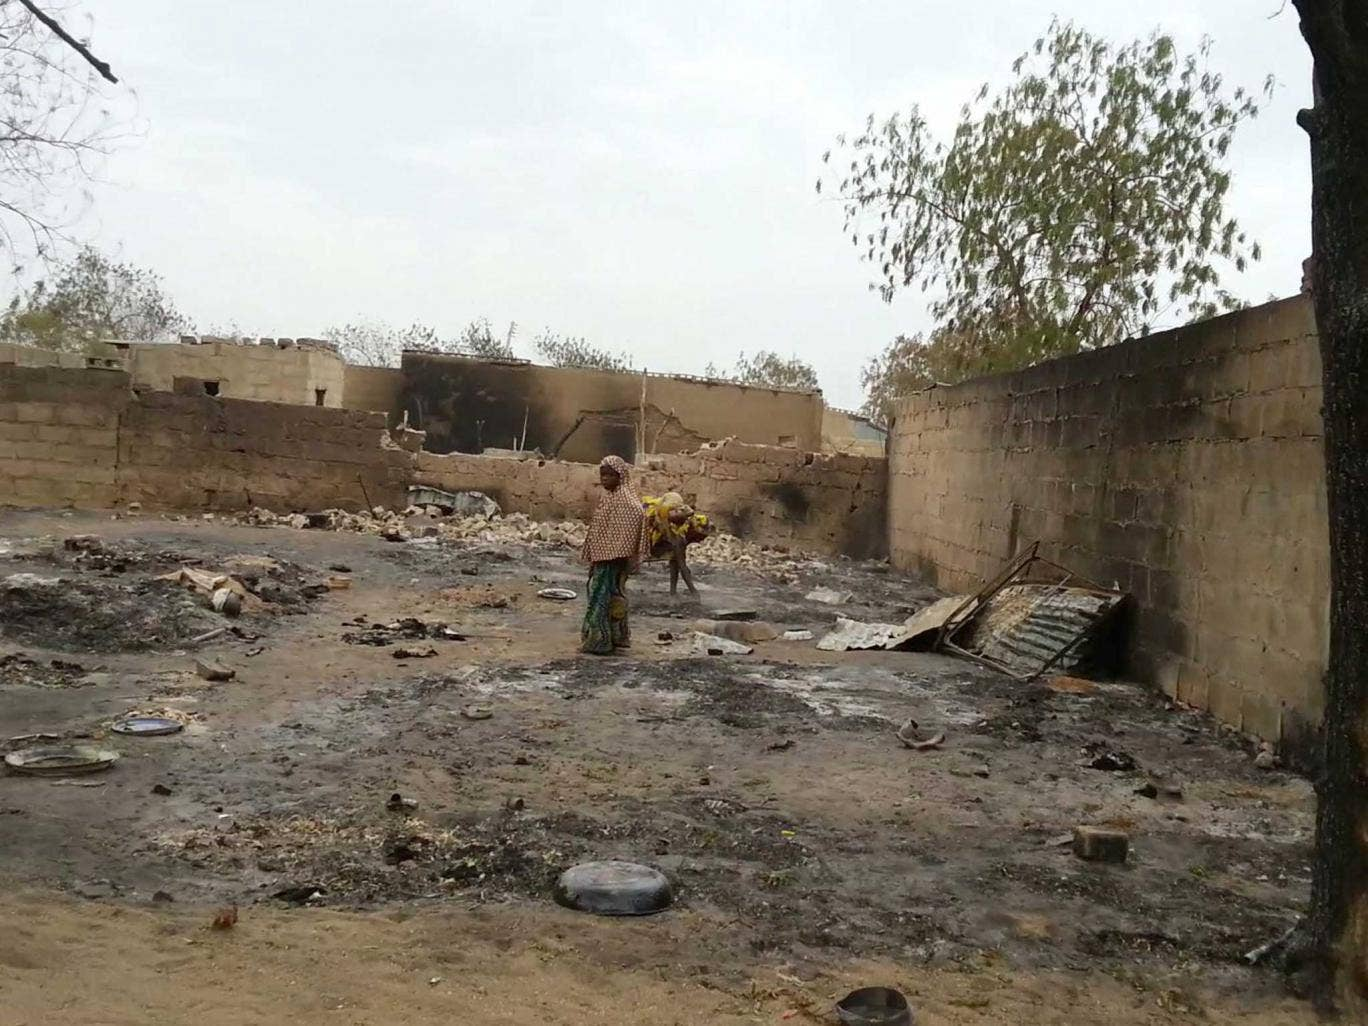 A young girl stands amid the burned ruins of Baga, Nigeria